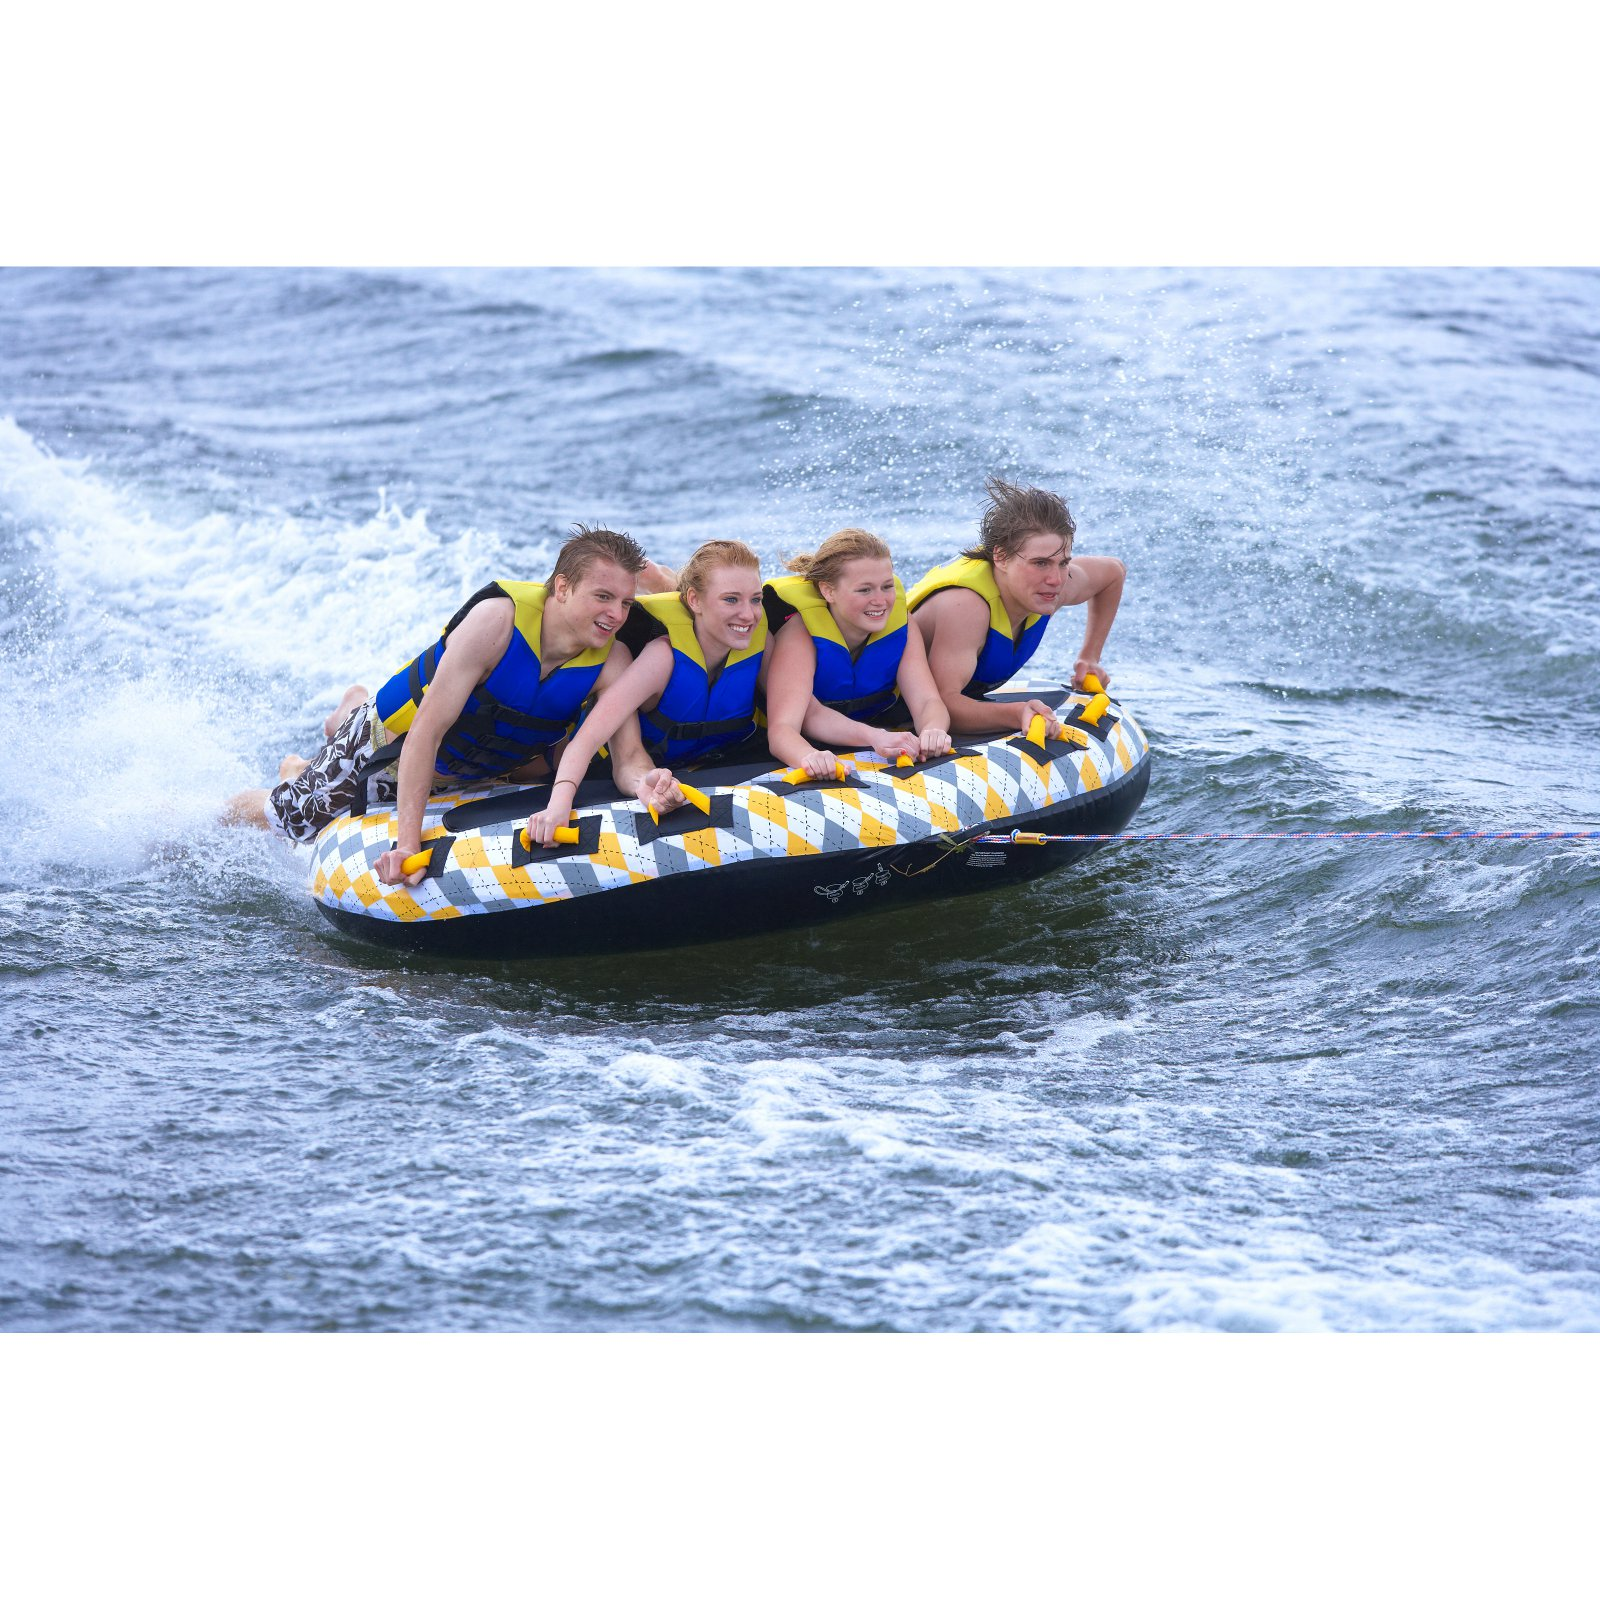 Rave Sports Mass Frantic 4-Person Tube by Rave Sports